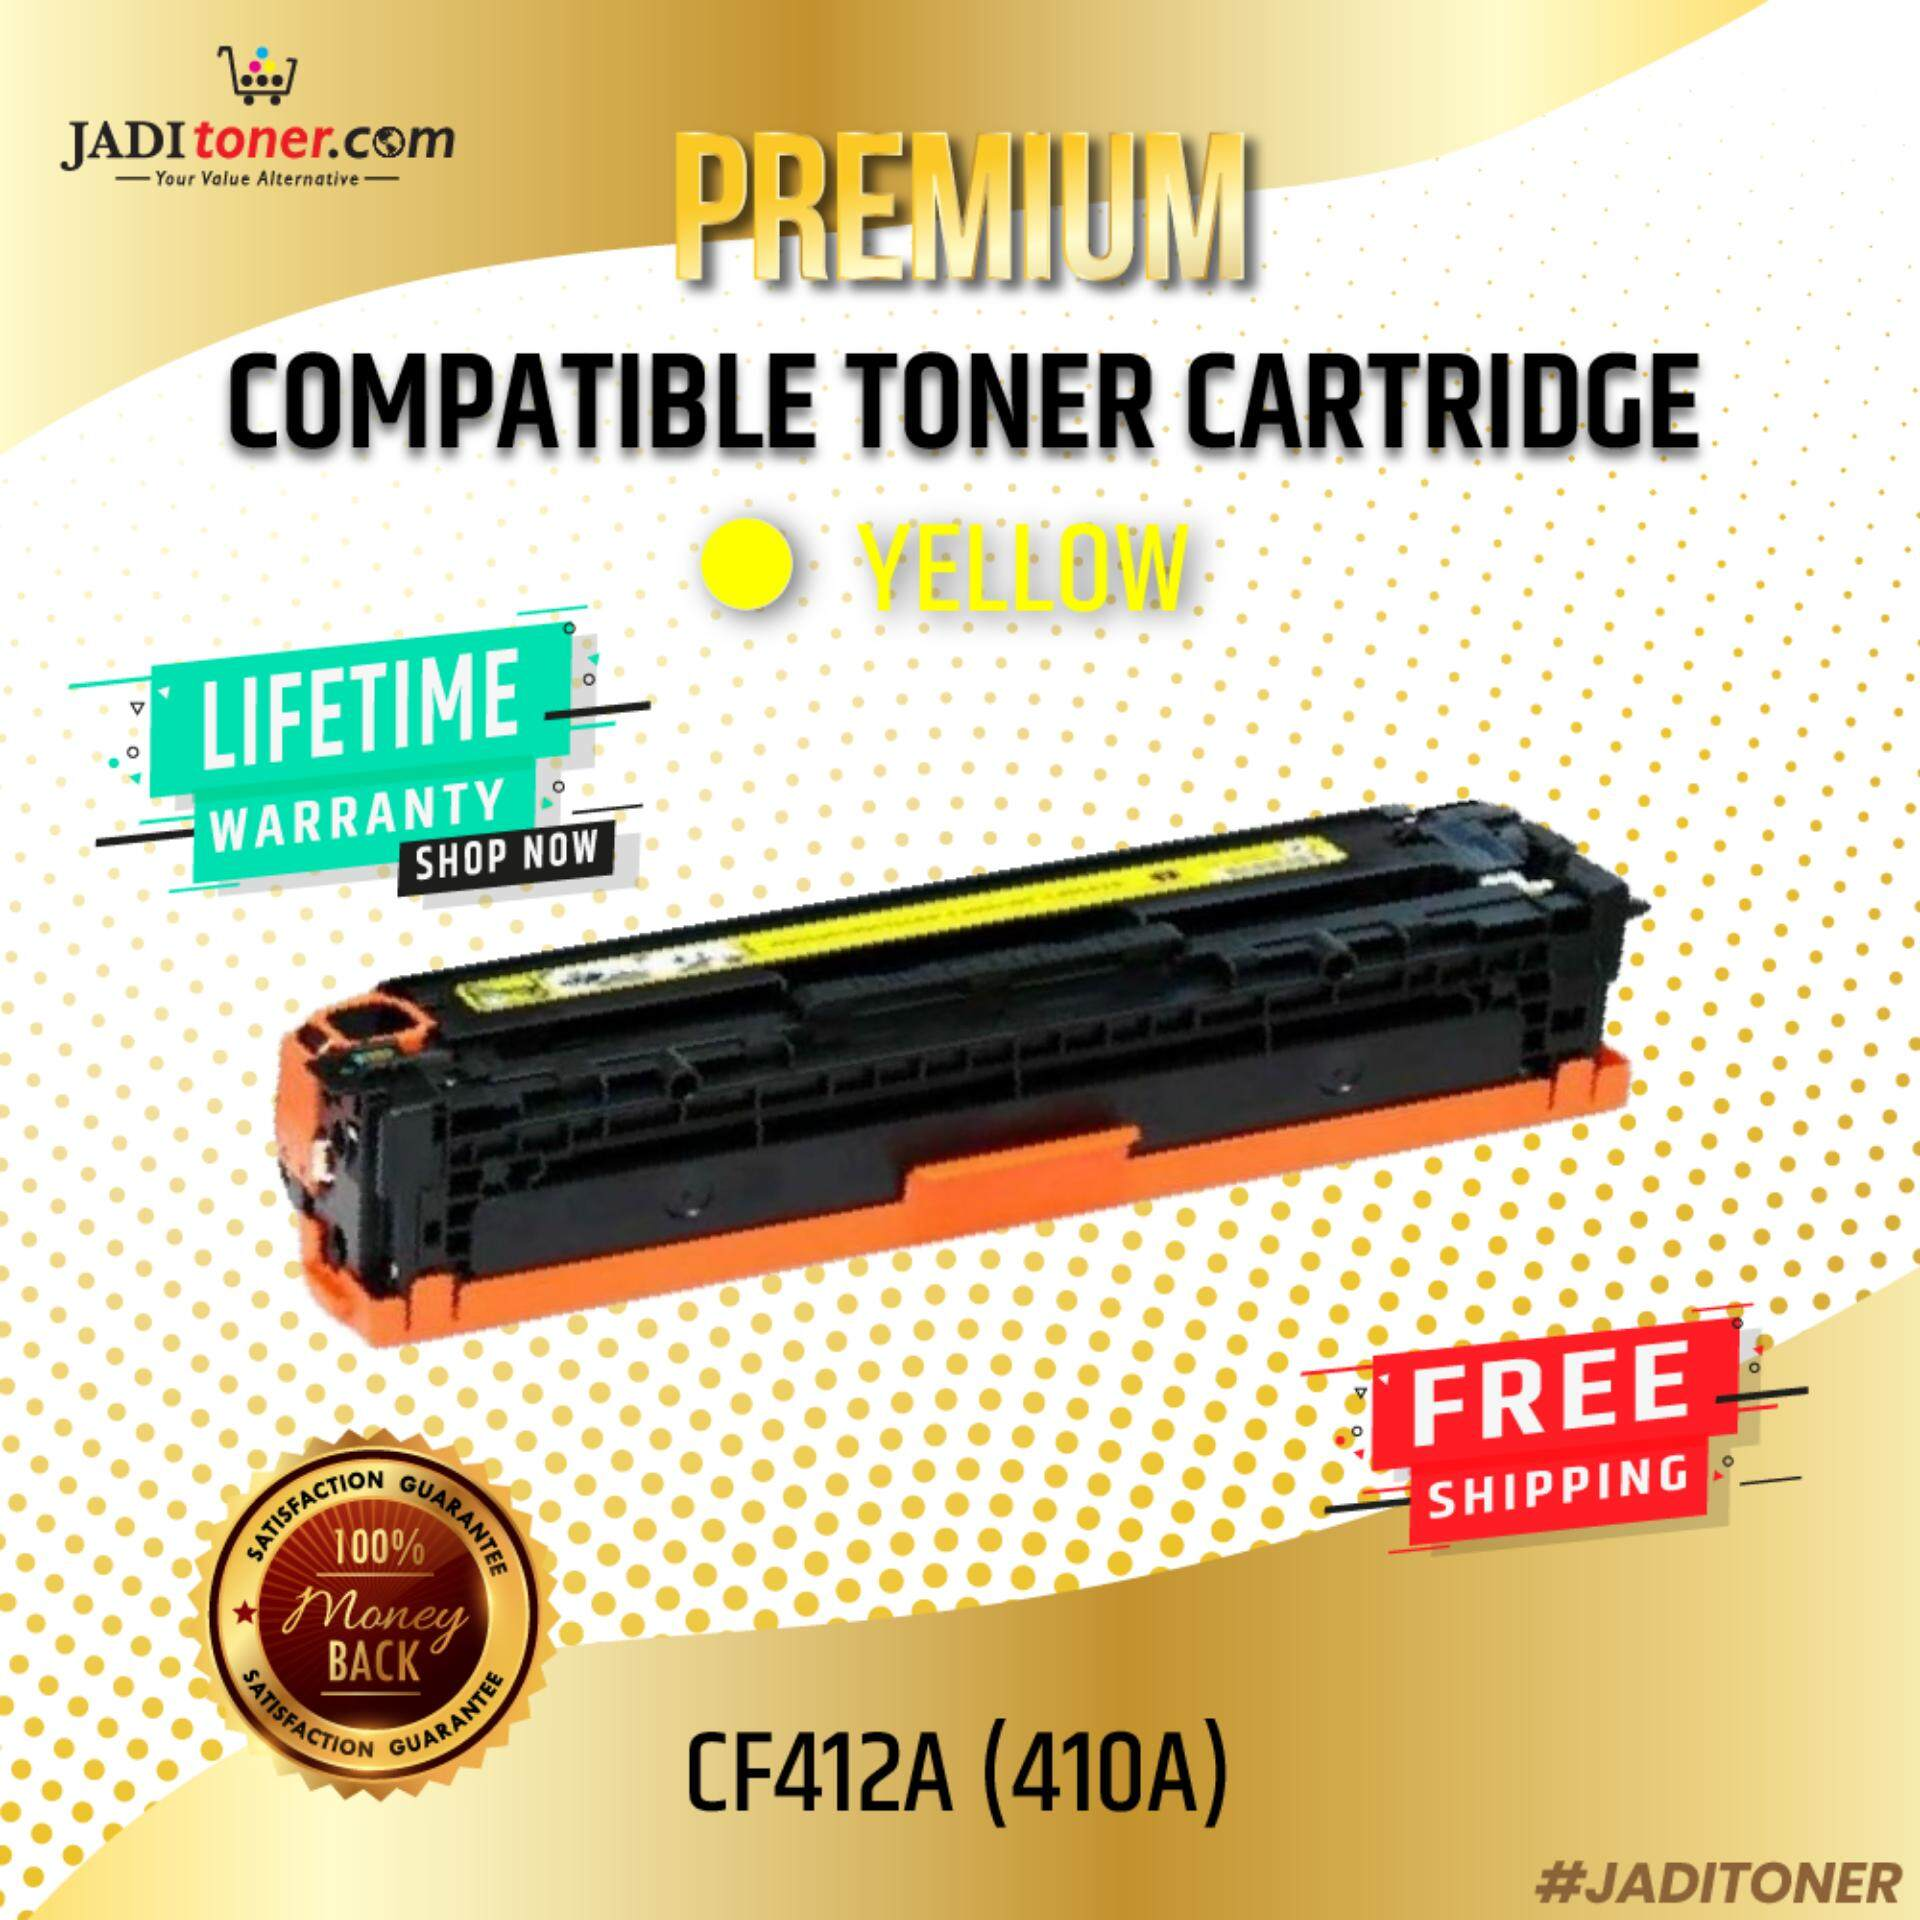 Compatible CF412A (410A) Yellow Toner Cartridge For Use In HP Color LaserJet Pro M452/MFP M477 / MFP M377